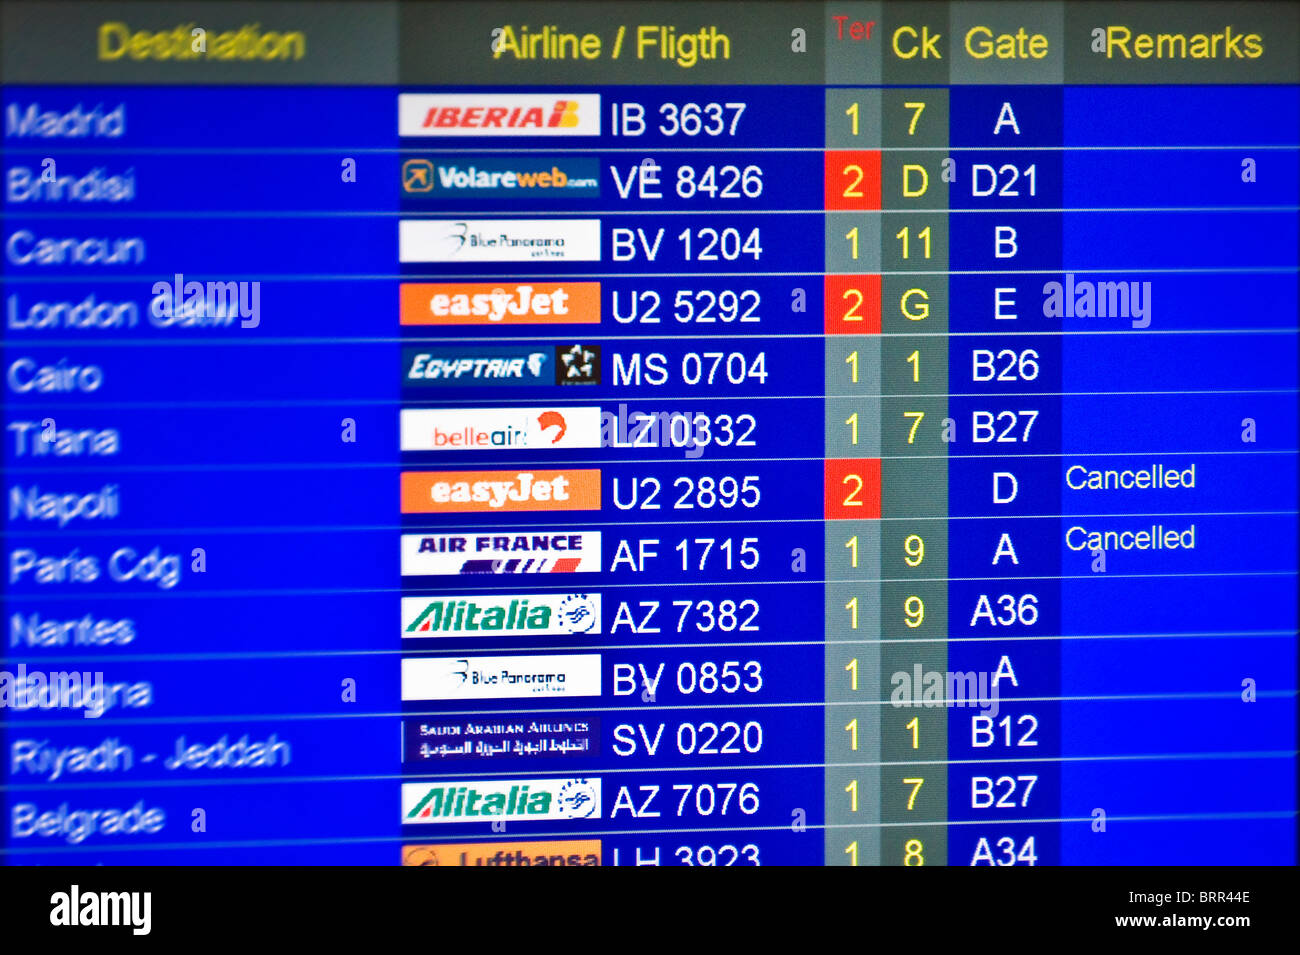 Airport information board showing arrivals and departures of flights - Stock Image